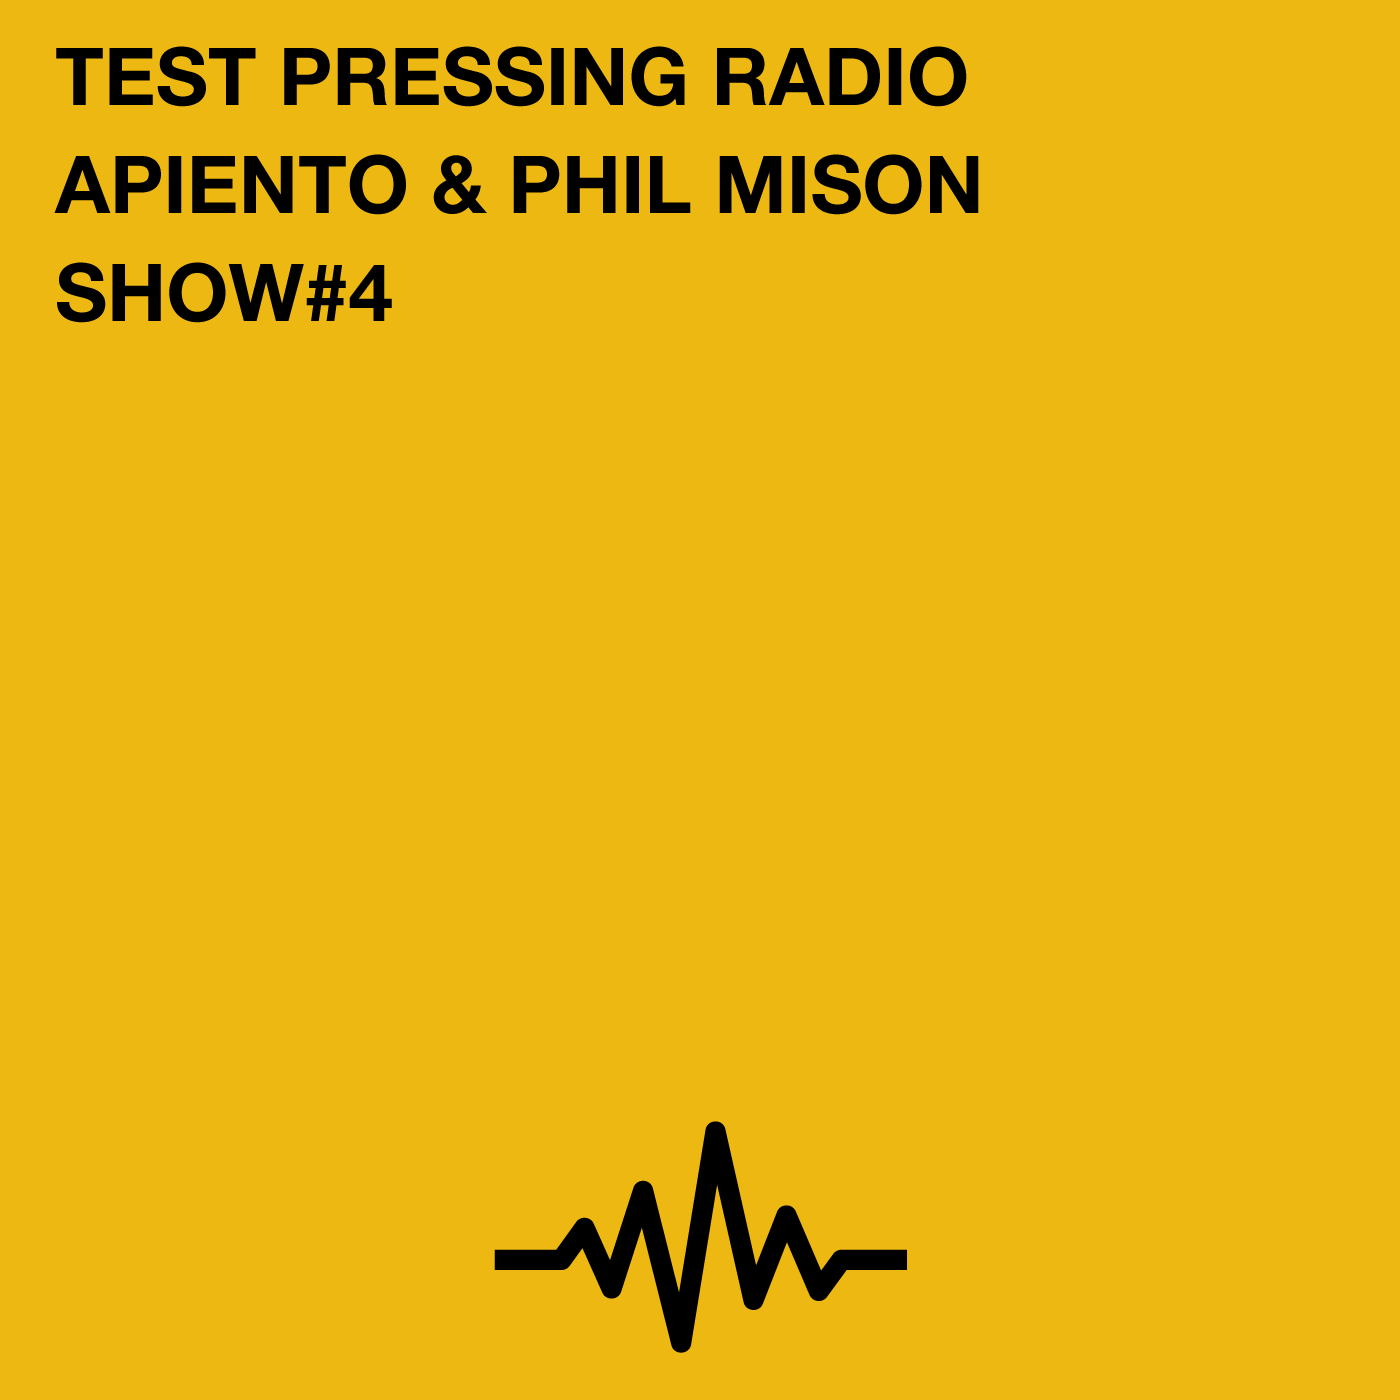 Test Pressing, Radio, Podcast, Phil Mison, Apiento, Paul Byrne